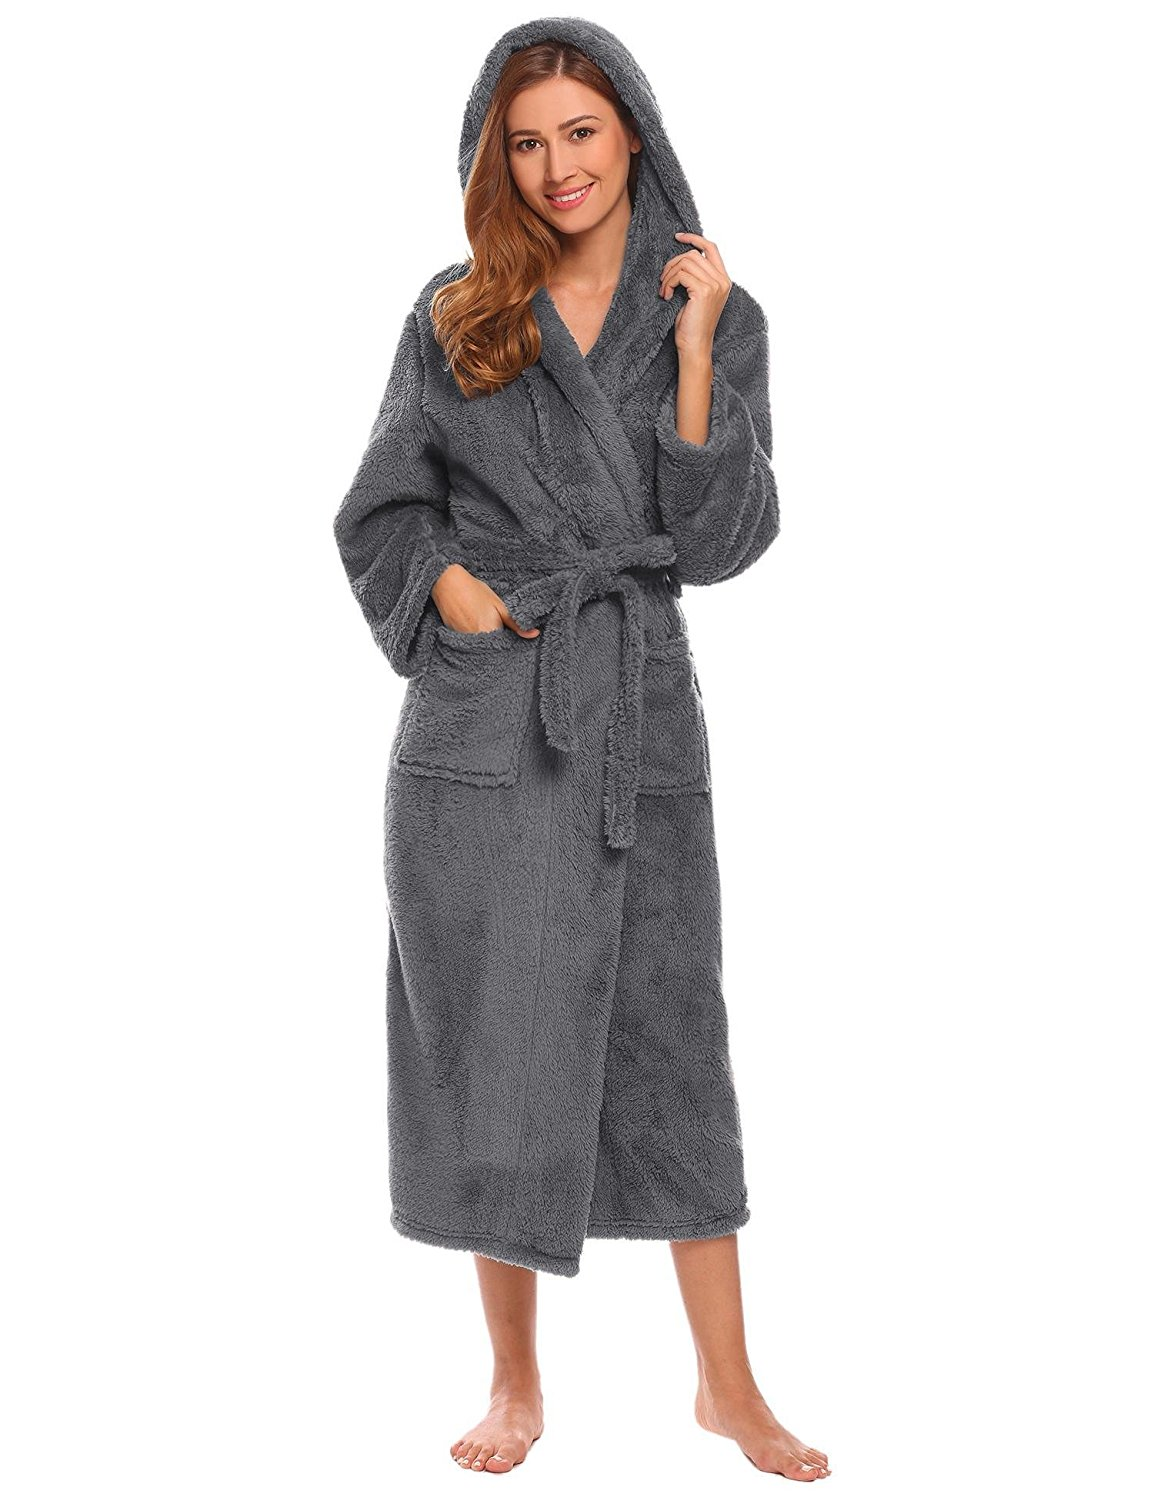 70cc96b5b0 Dickin Women Fleece Robes Hooded Belted Plush Robes Long Spa Bathrobes With  Pockets and Belt